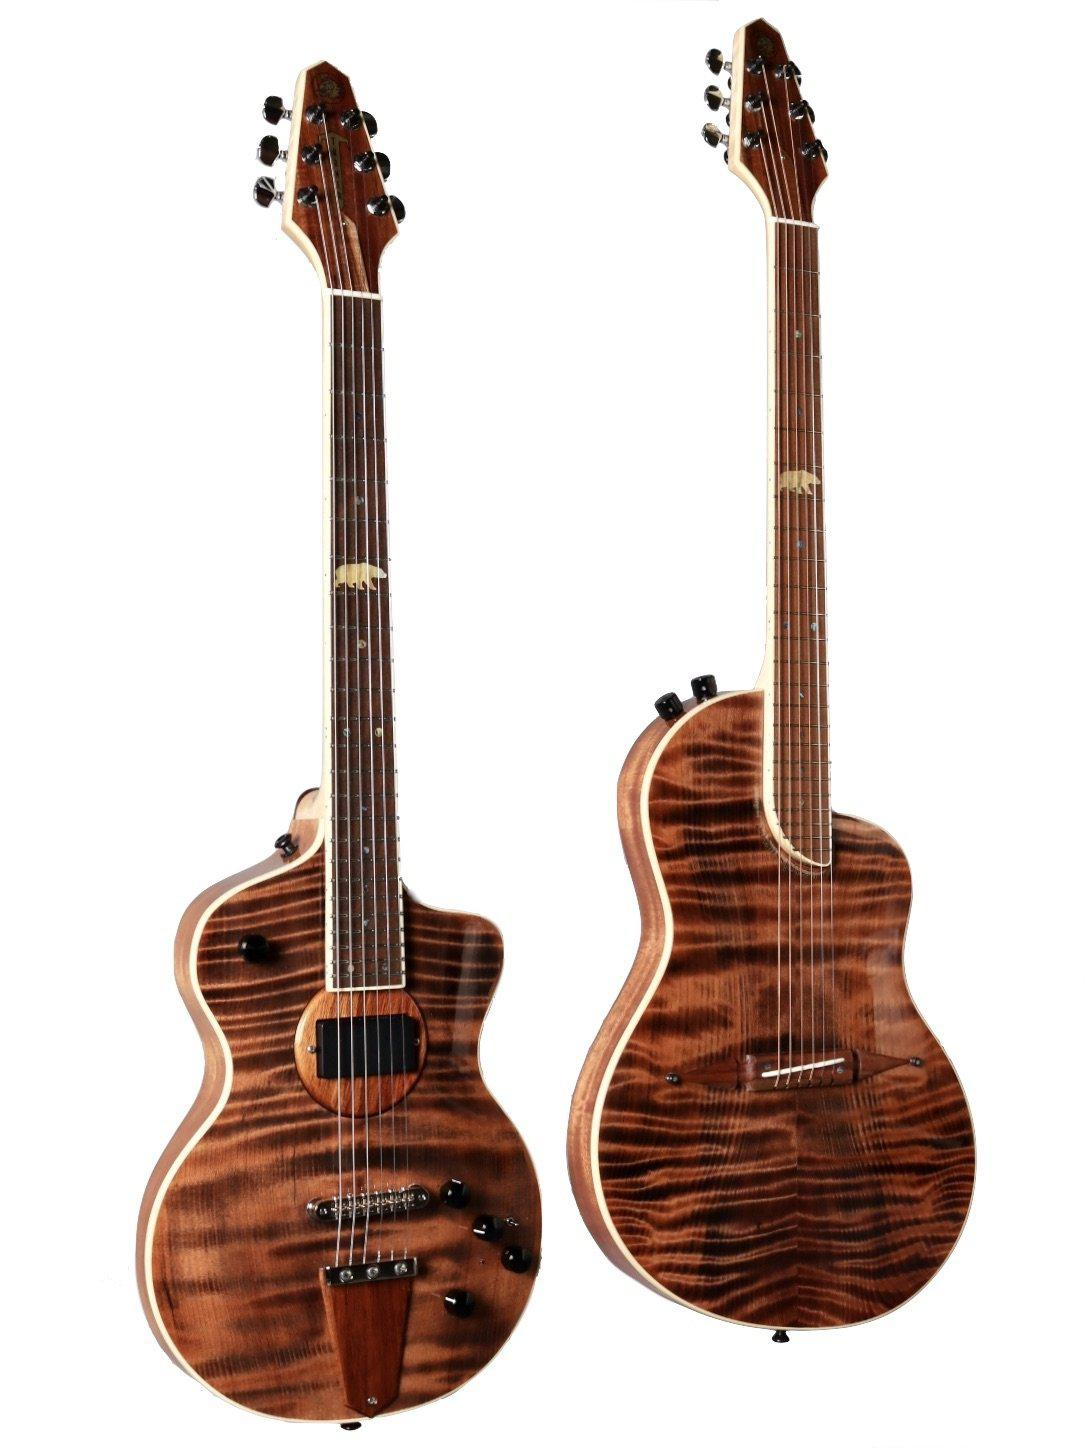 Rick Turner California Series Guitars - Model 1 & Renaissance Twin Set 2021  Set #2 of 5 - Rick Turner Guitars - Heartbreaker Guitars